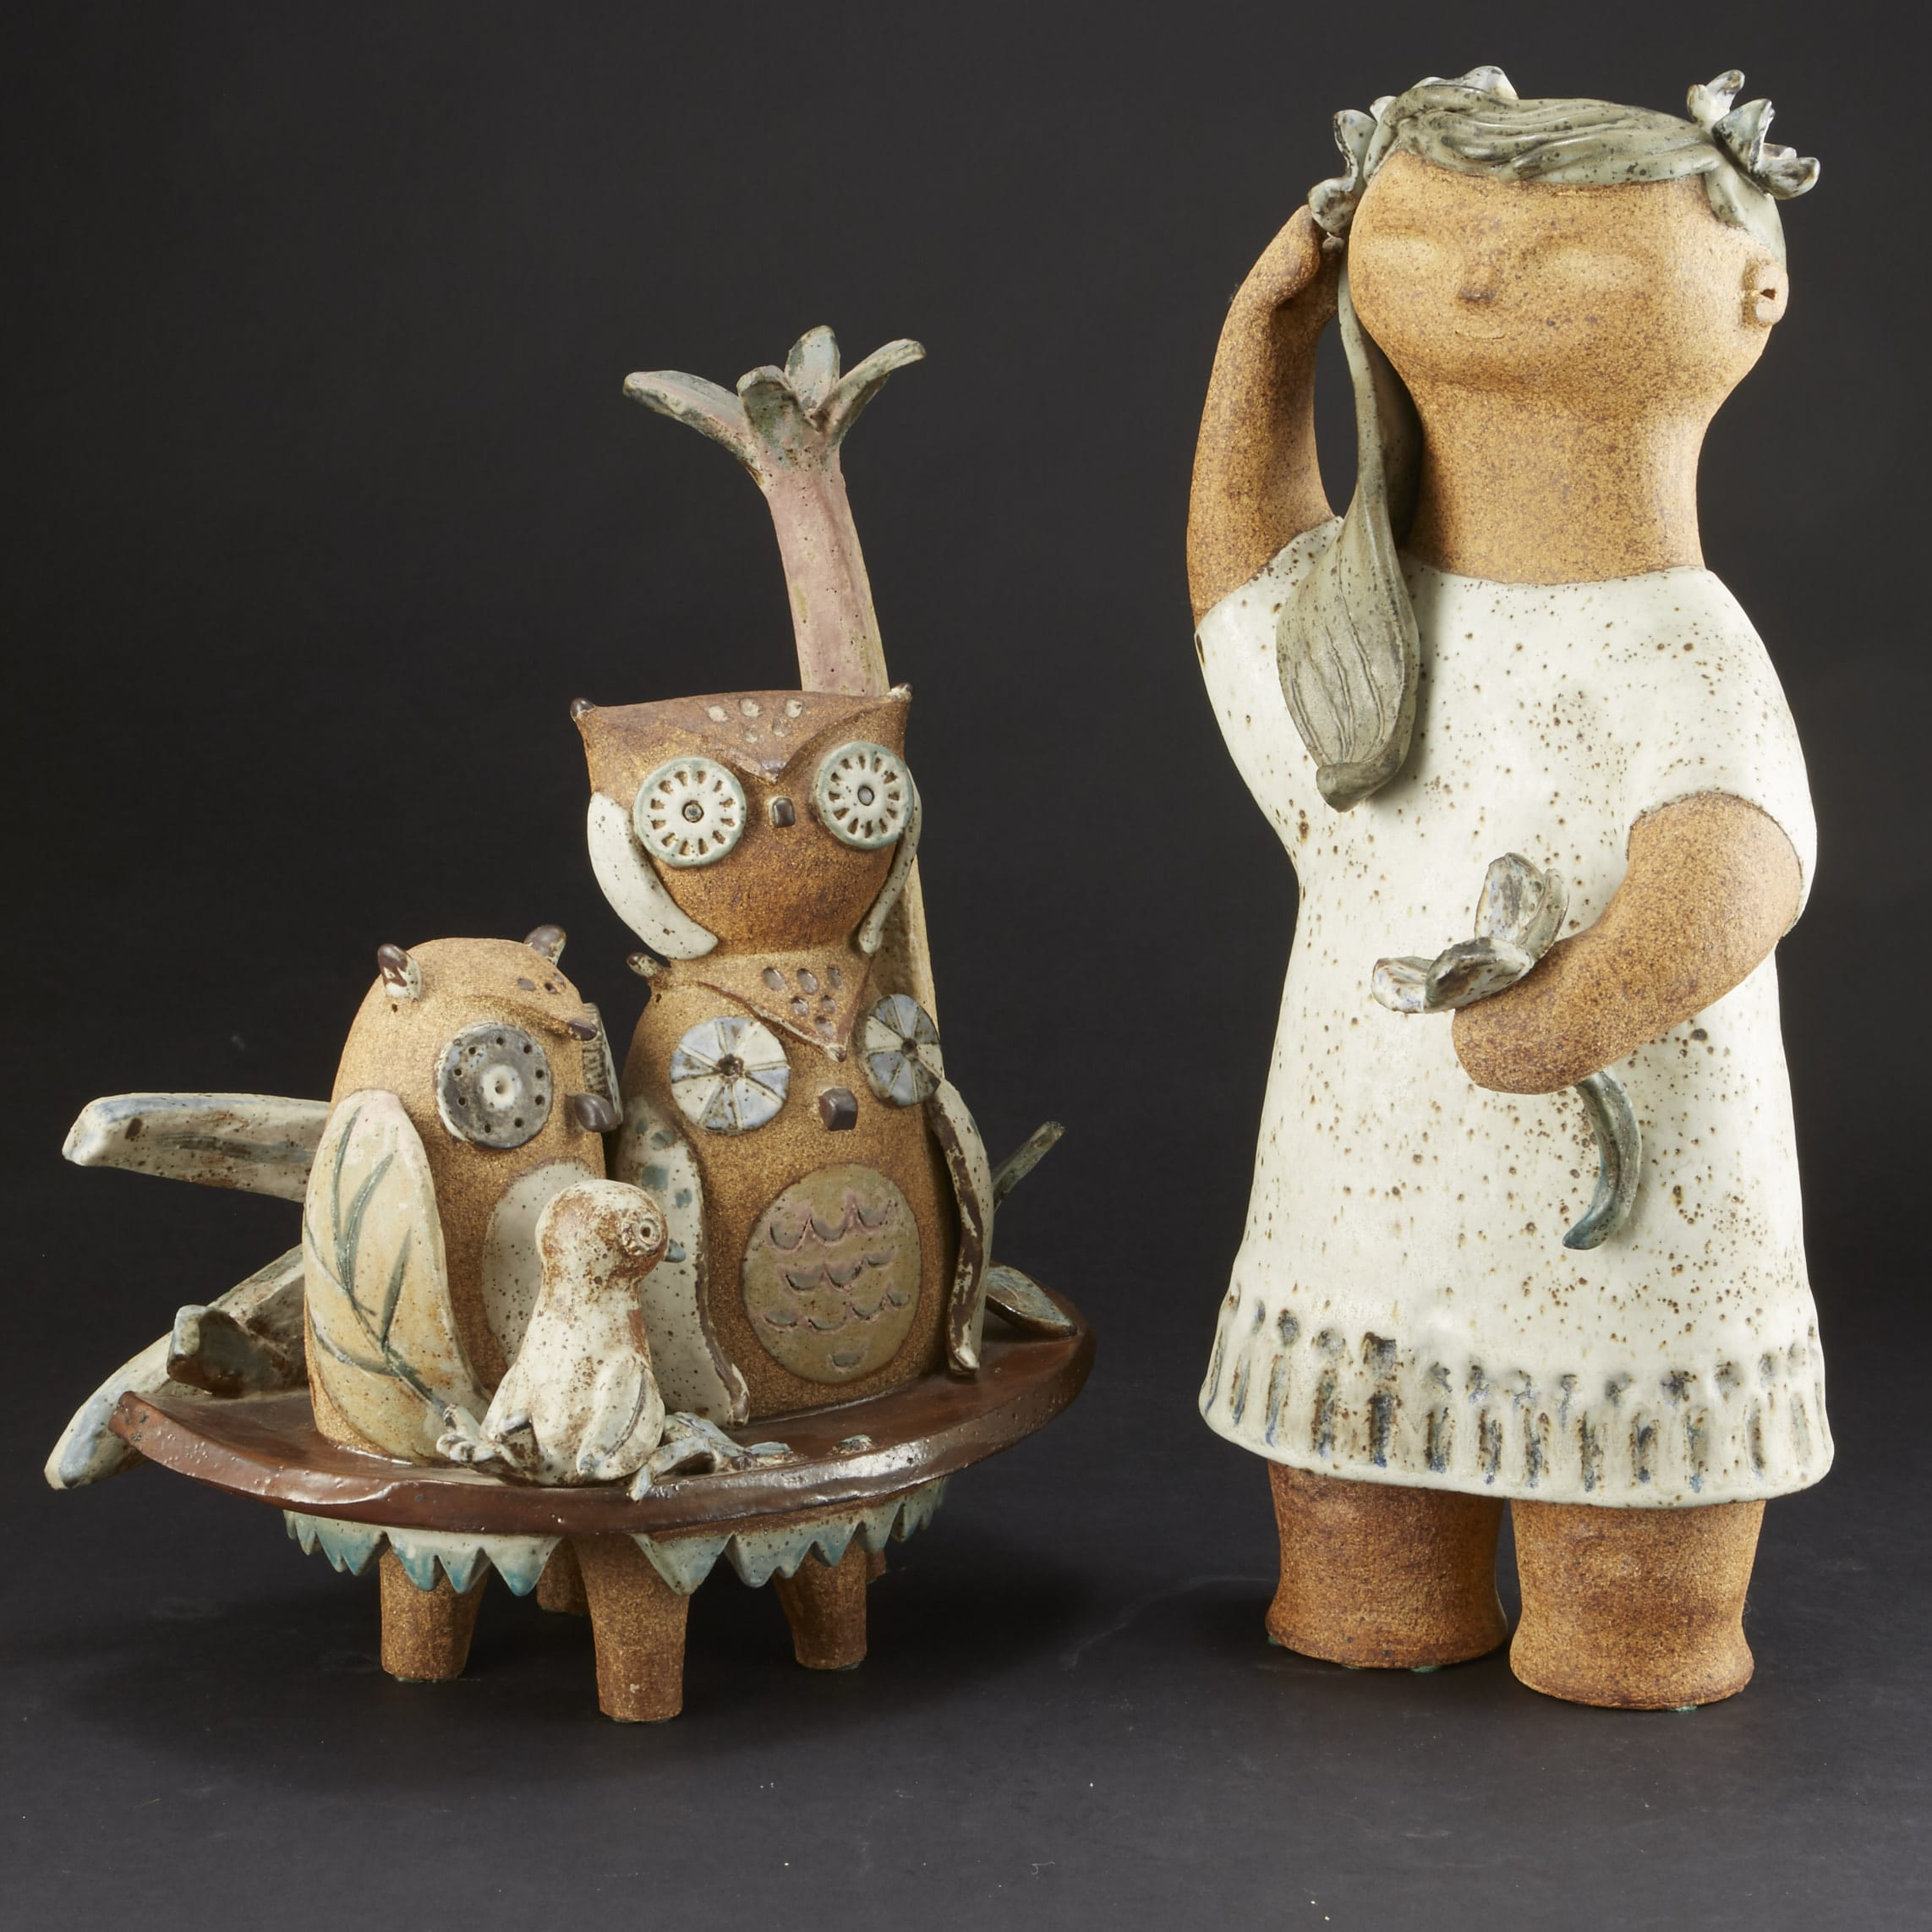 Lot 150: Group of Two Hoshiko Kusudo Ceramic Sculptures